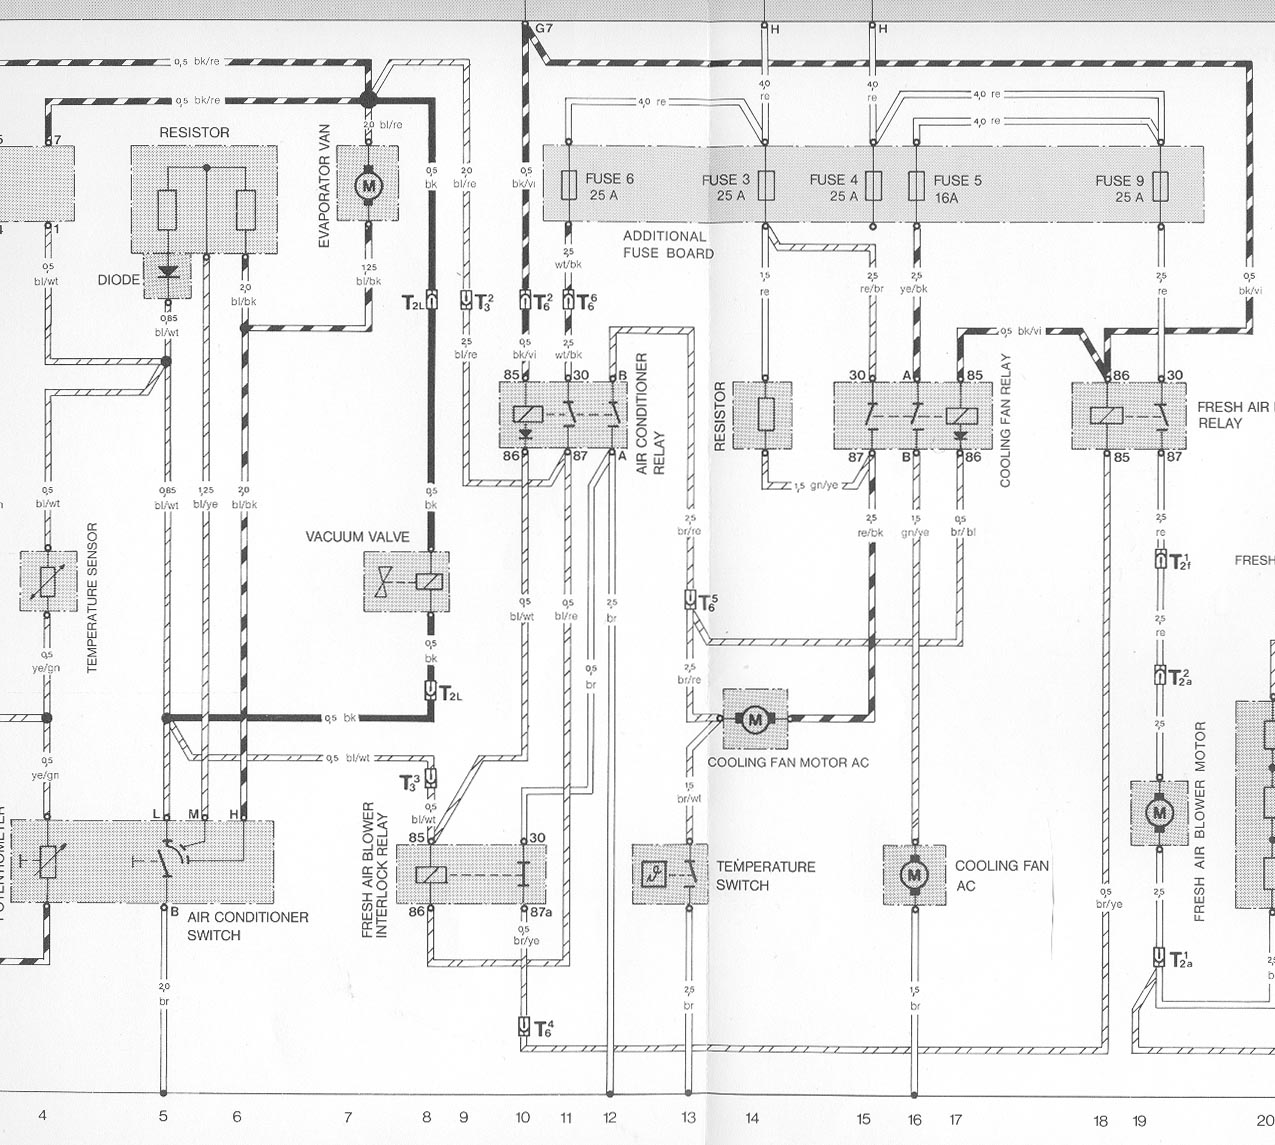 early_cooling_fan_with_ac cooling fan operation and troubleshooting Hayden Electric Fan Wiring Diagram at gsmportal.co